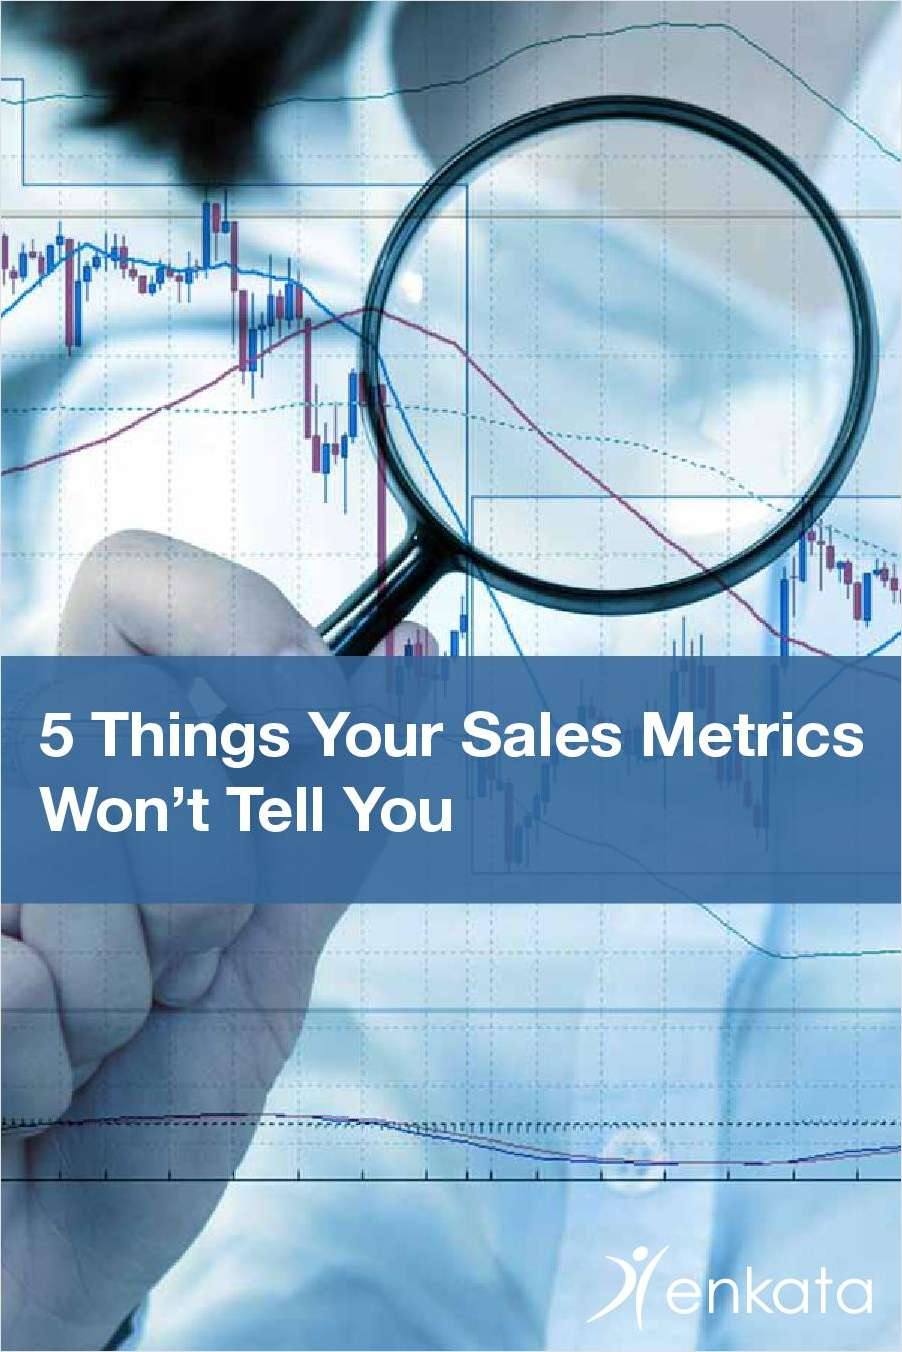 5 Things Your Sales Metrics Won't Tell You